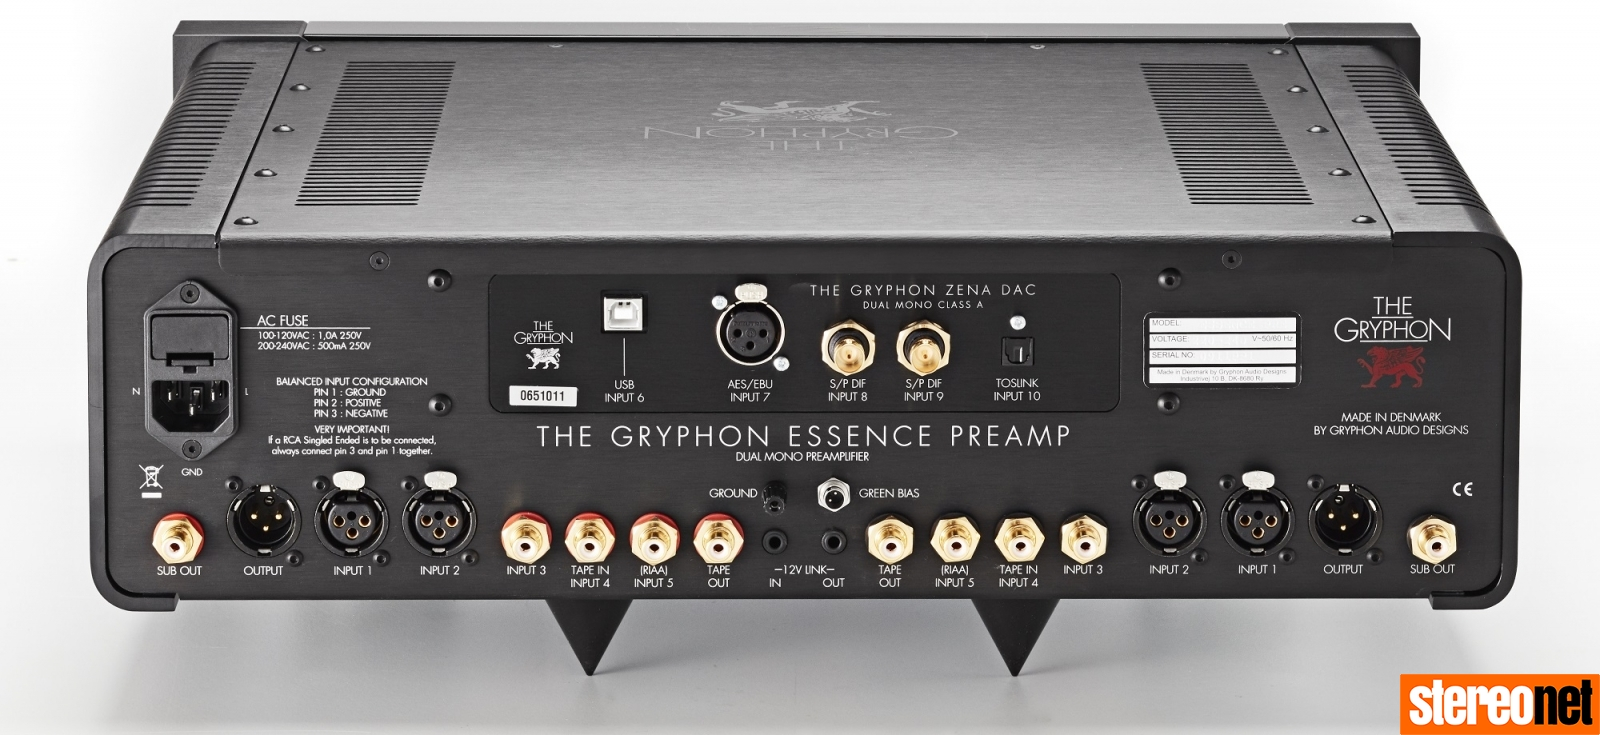 The Gryphon Essence